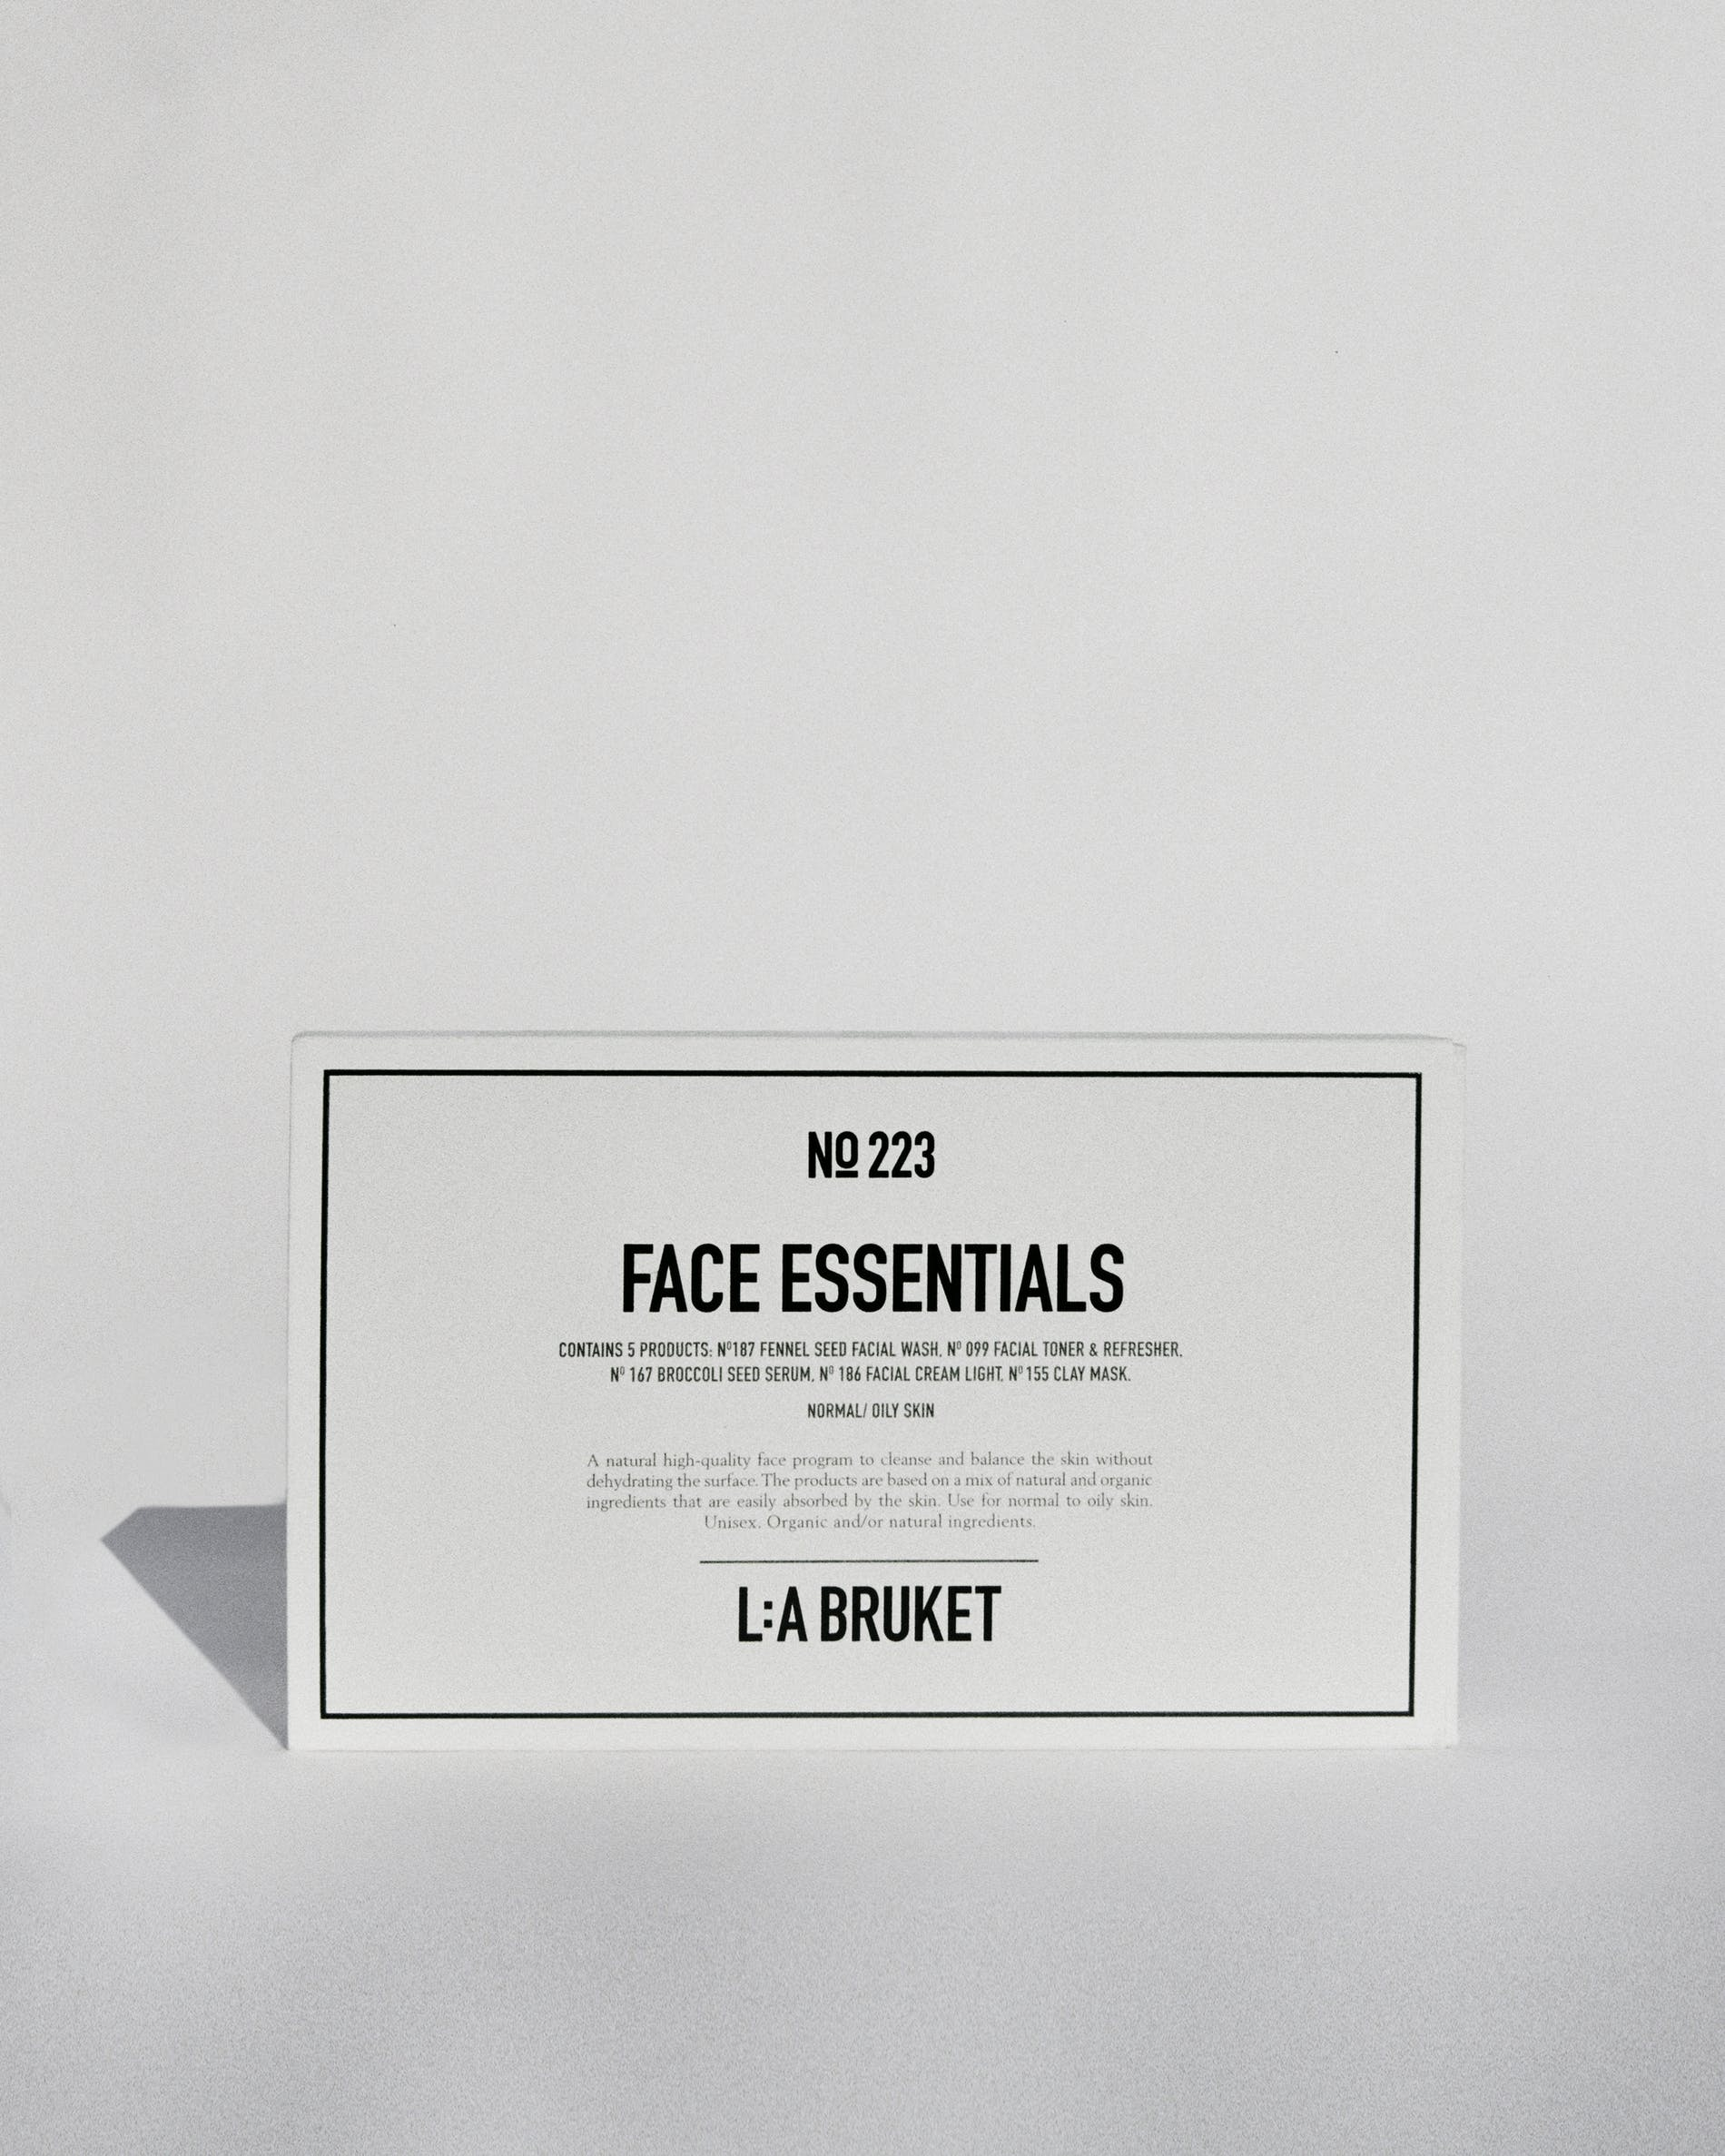 Face essentials kit